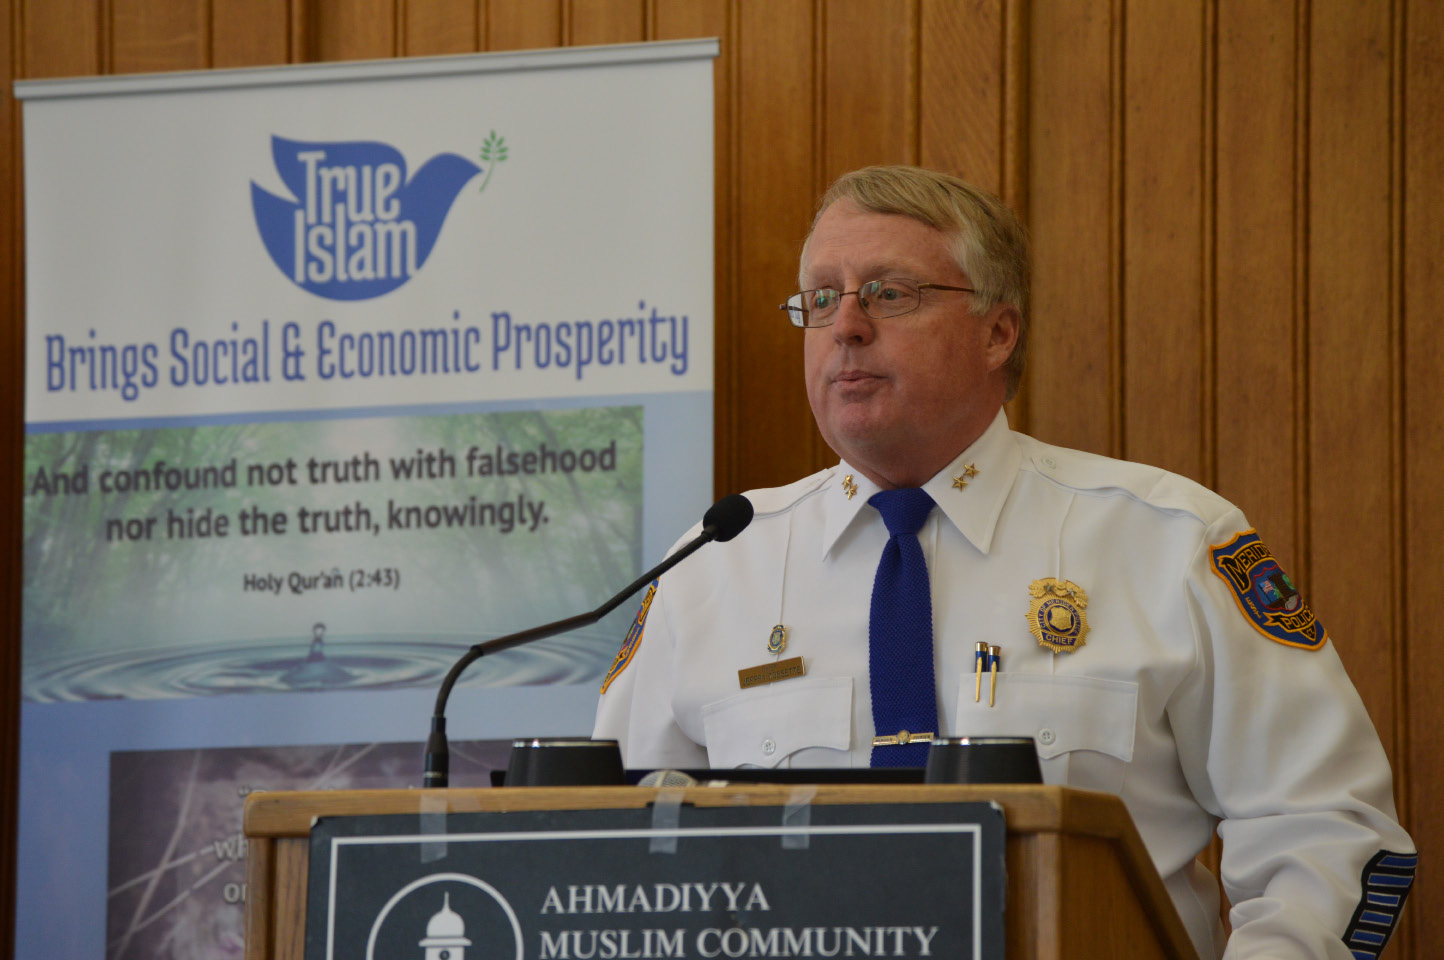 Meriden Police Chief Jeffry Cossette speaks Thursday during an event at the Capitol hosted by the Ahmadiyya Community of Connecticut. | Mike Savino, Record-Journal